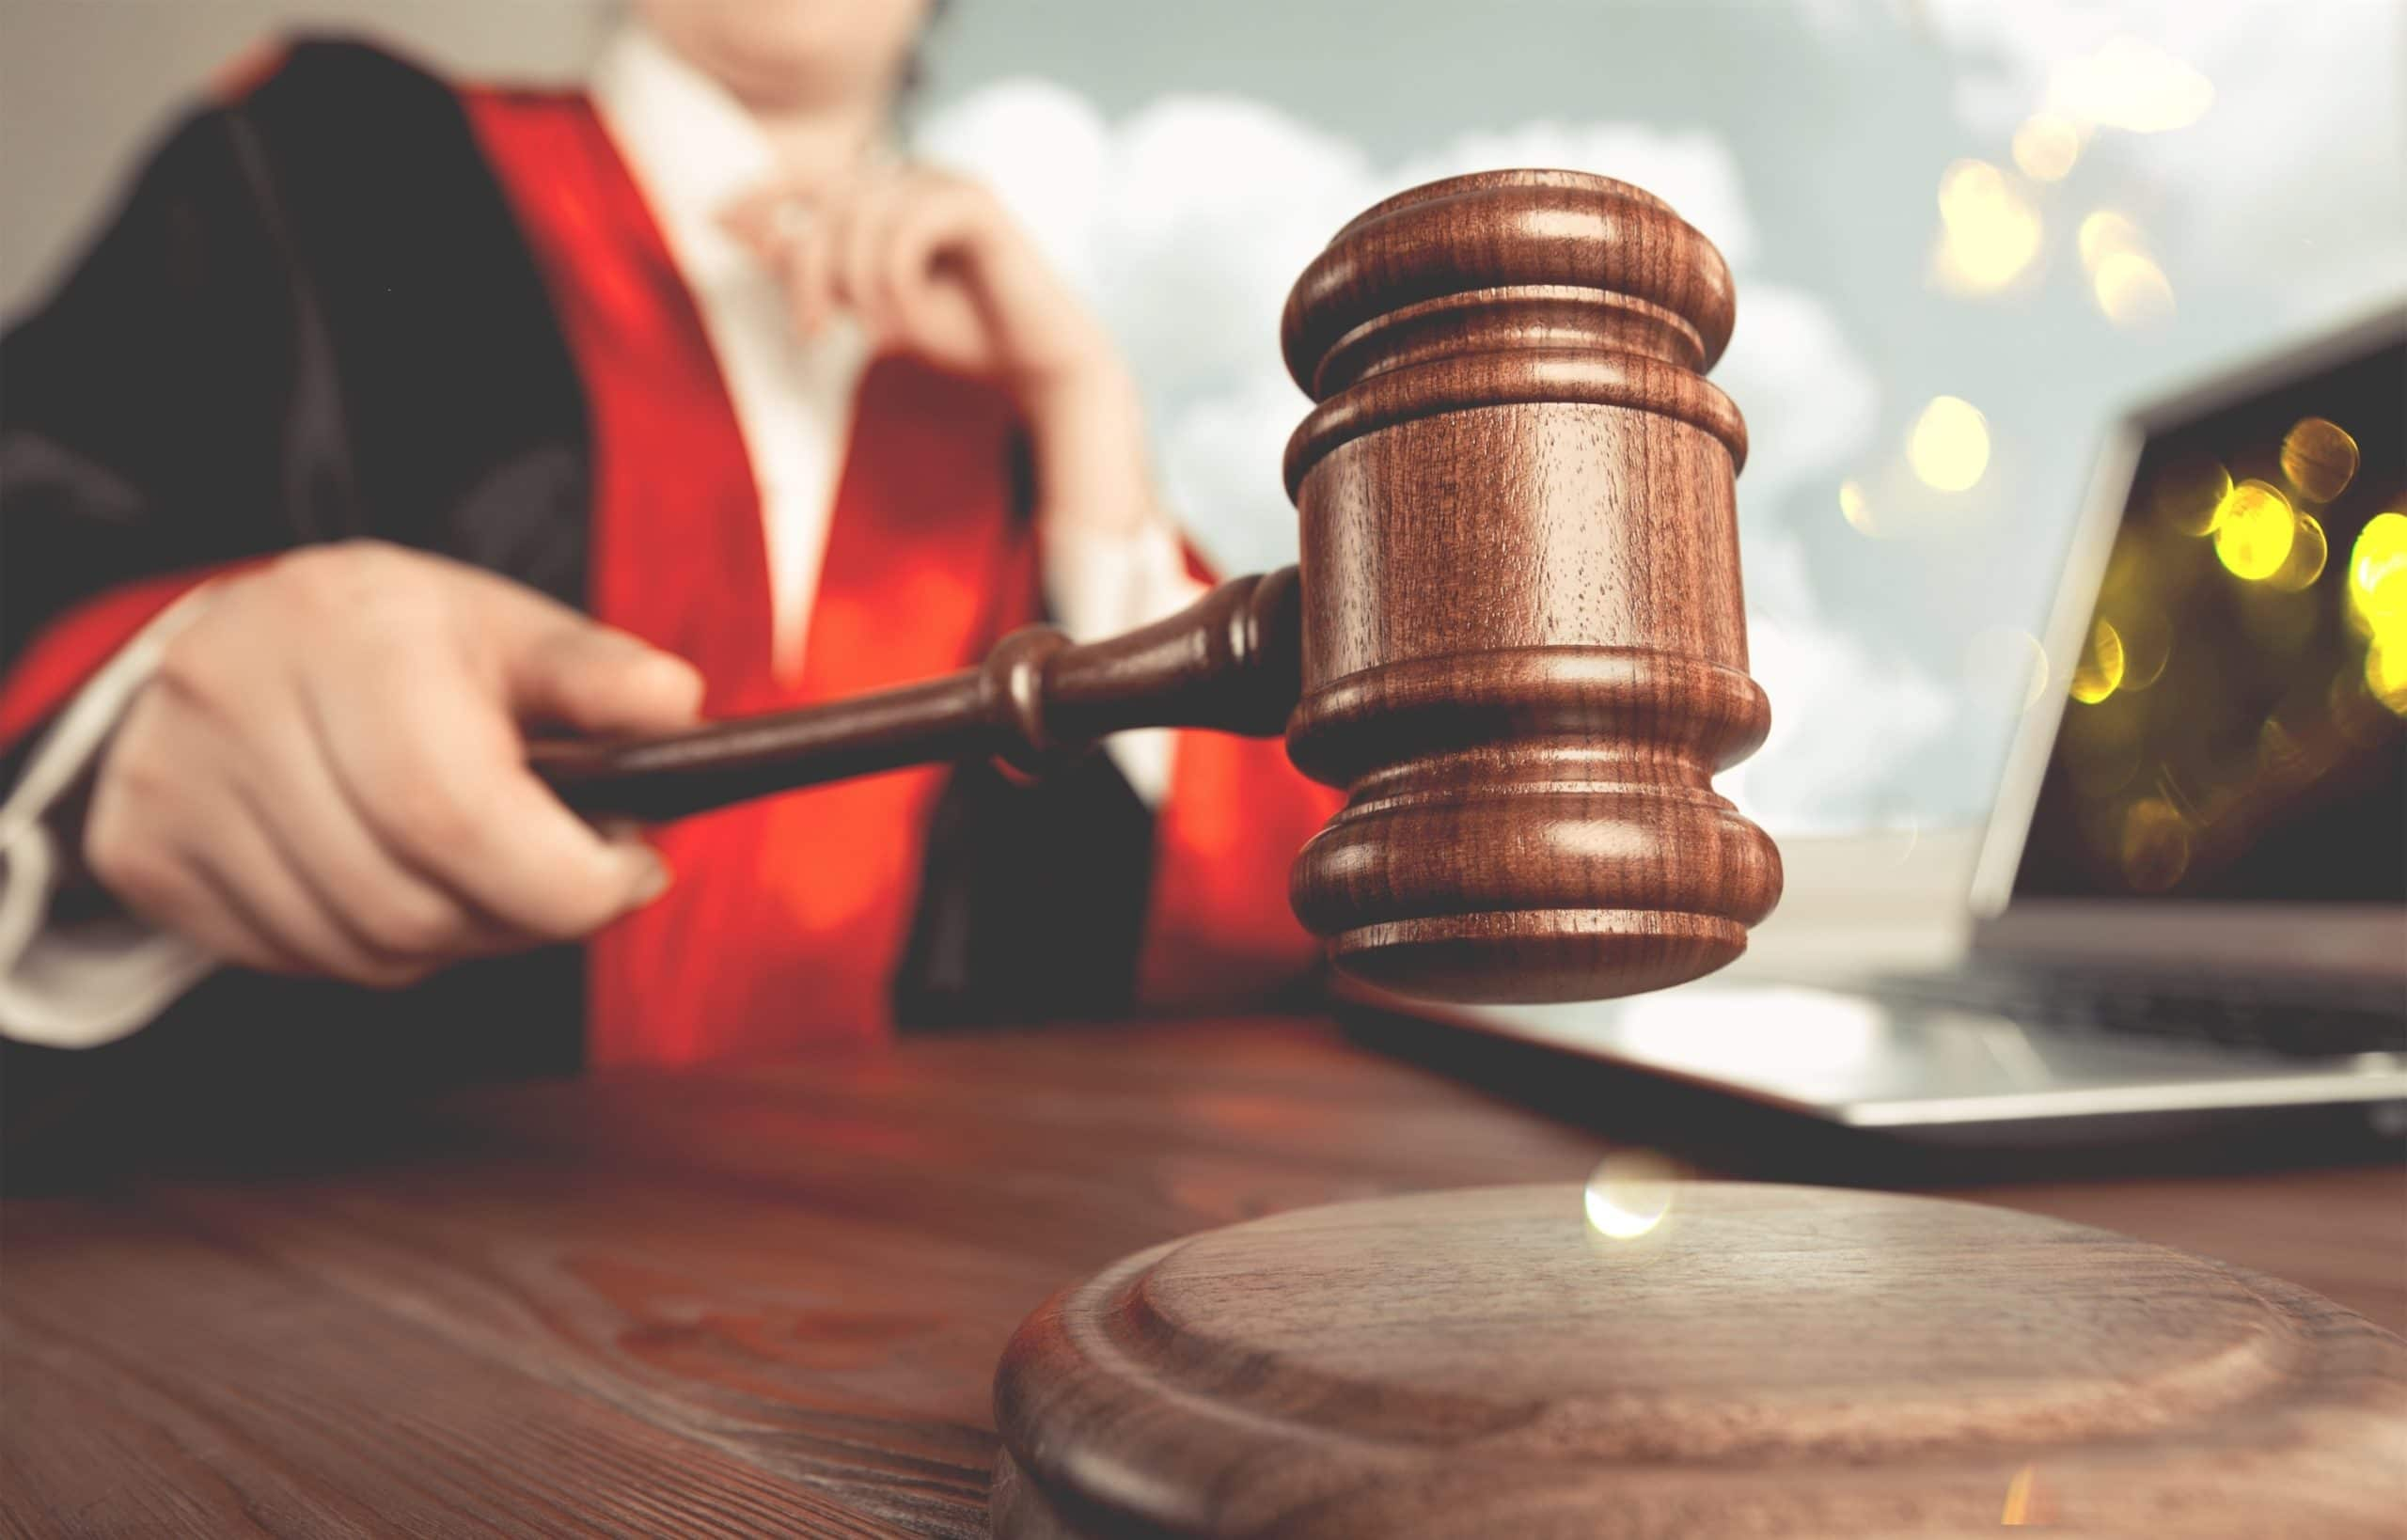 appealing spousal support ruling concept. Man holds gavel judge with lawyer